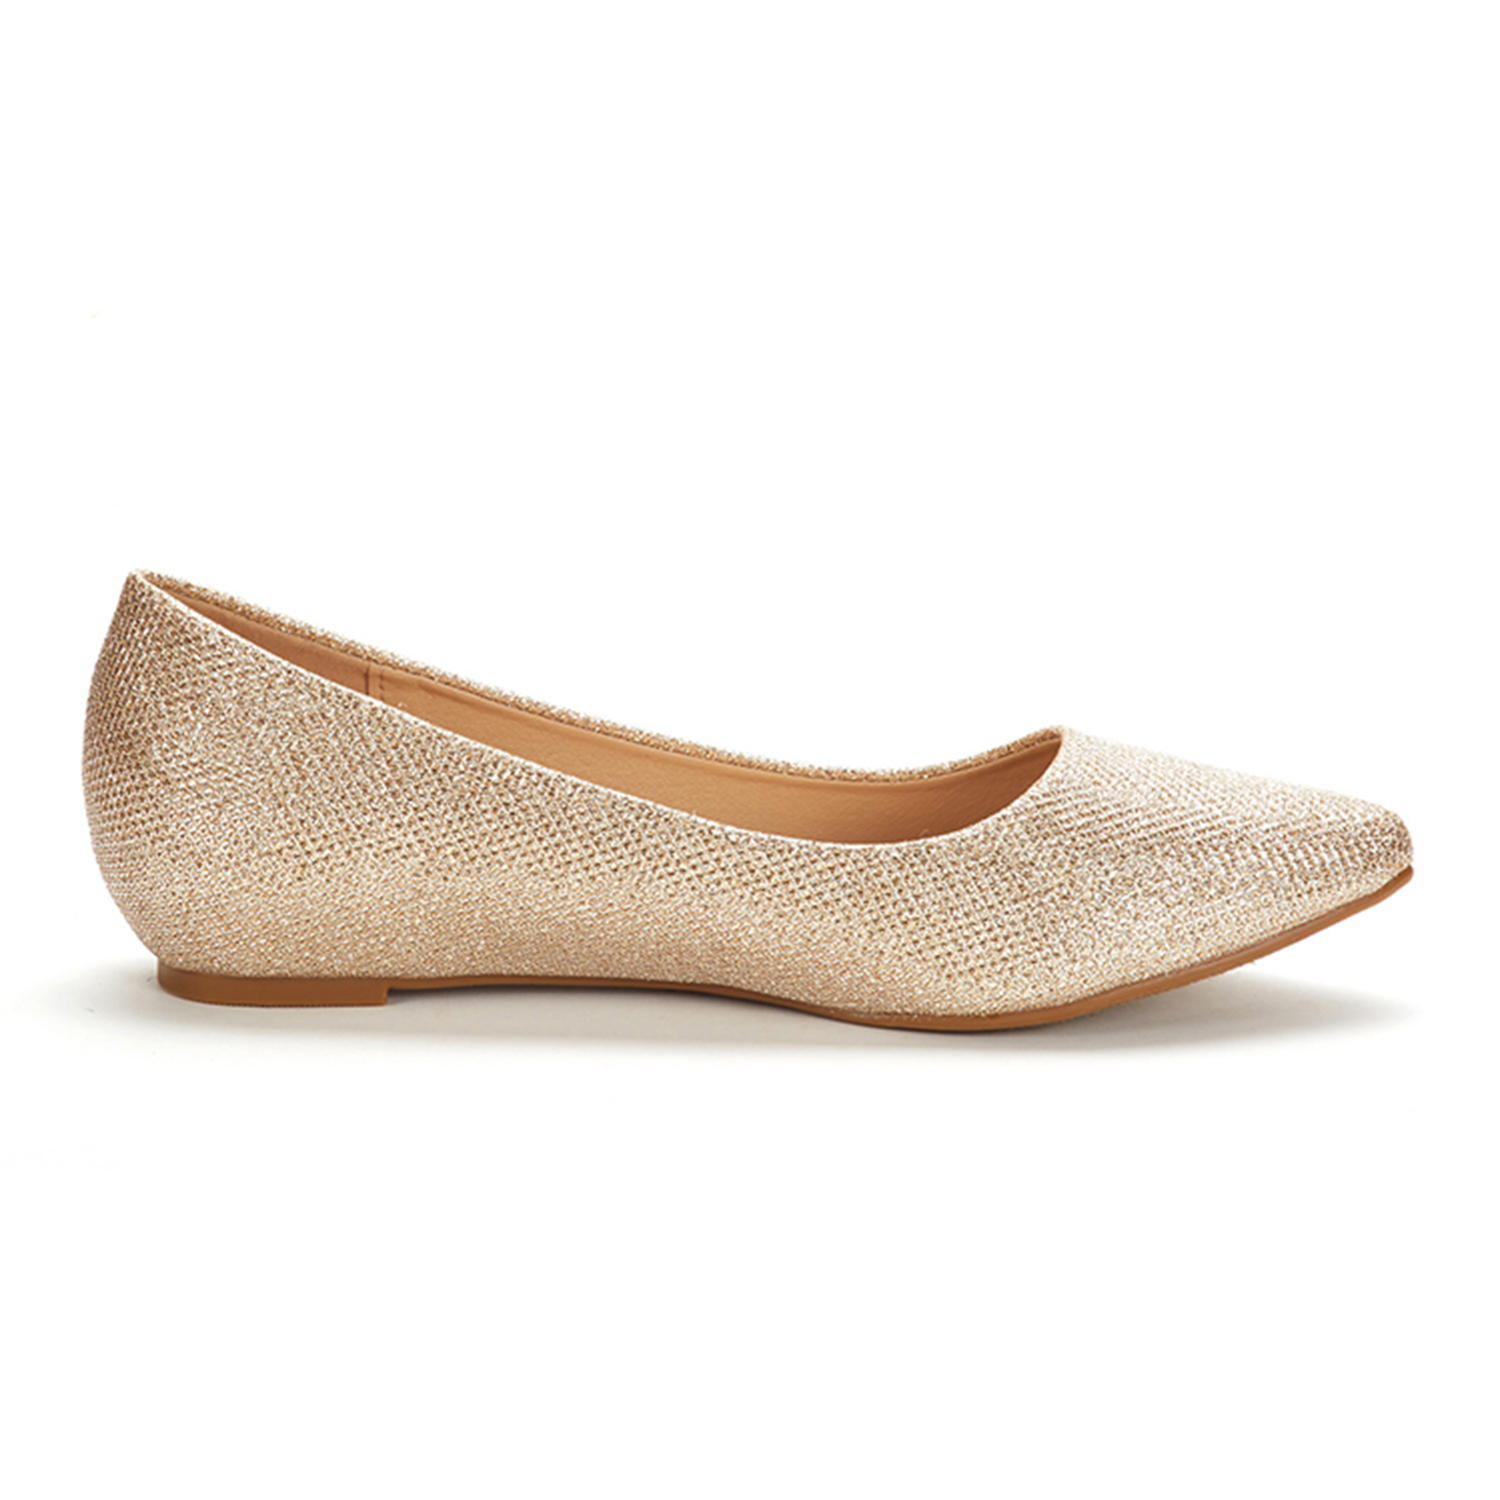 DREAM-PAIRS-Women-Low-Wedge-Flats-Ladies-Pointed-Toe-Slip-On-Comfort-Flat-Shoes thumbnail 32